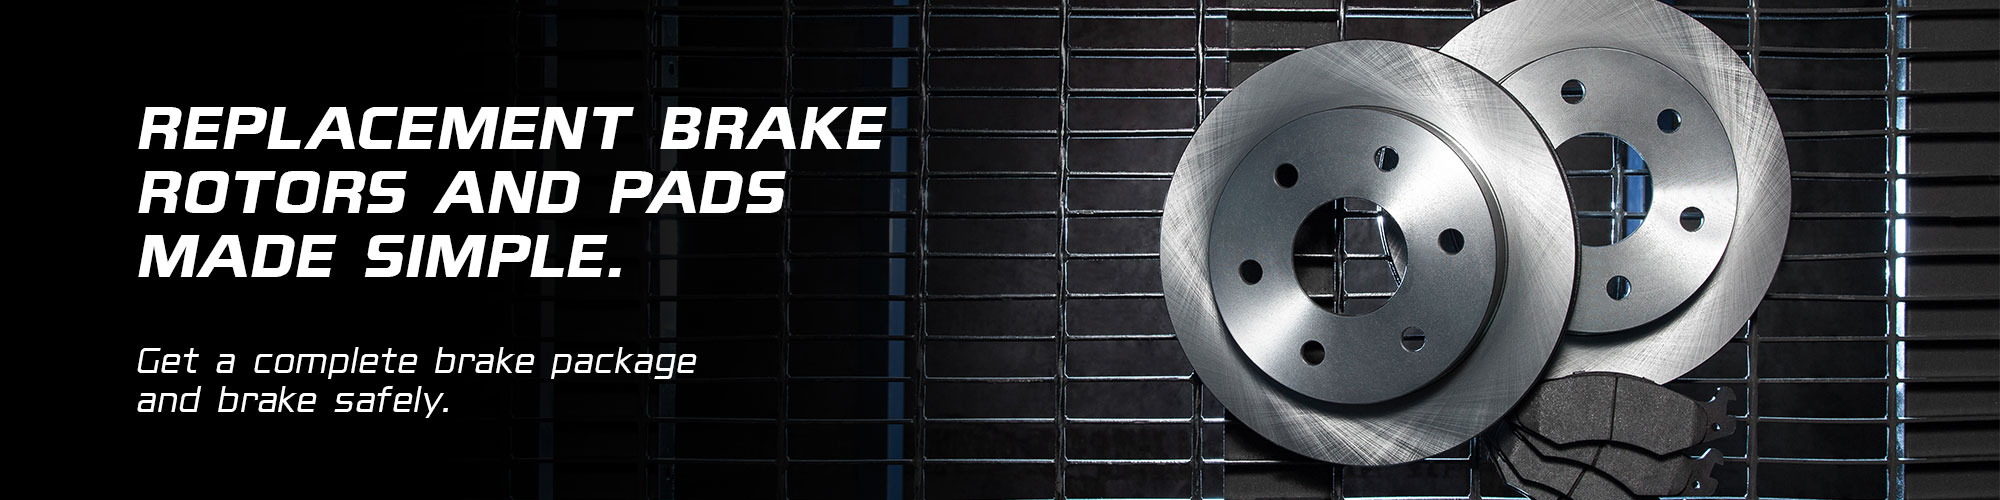 Looking For Log Lasting brakes? Then go for brakelabs.com